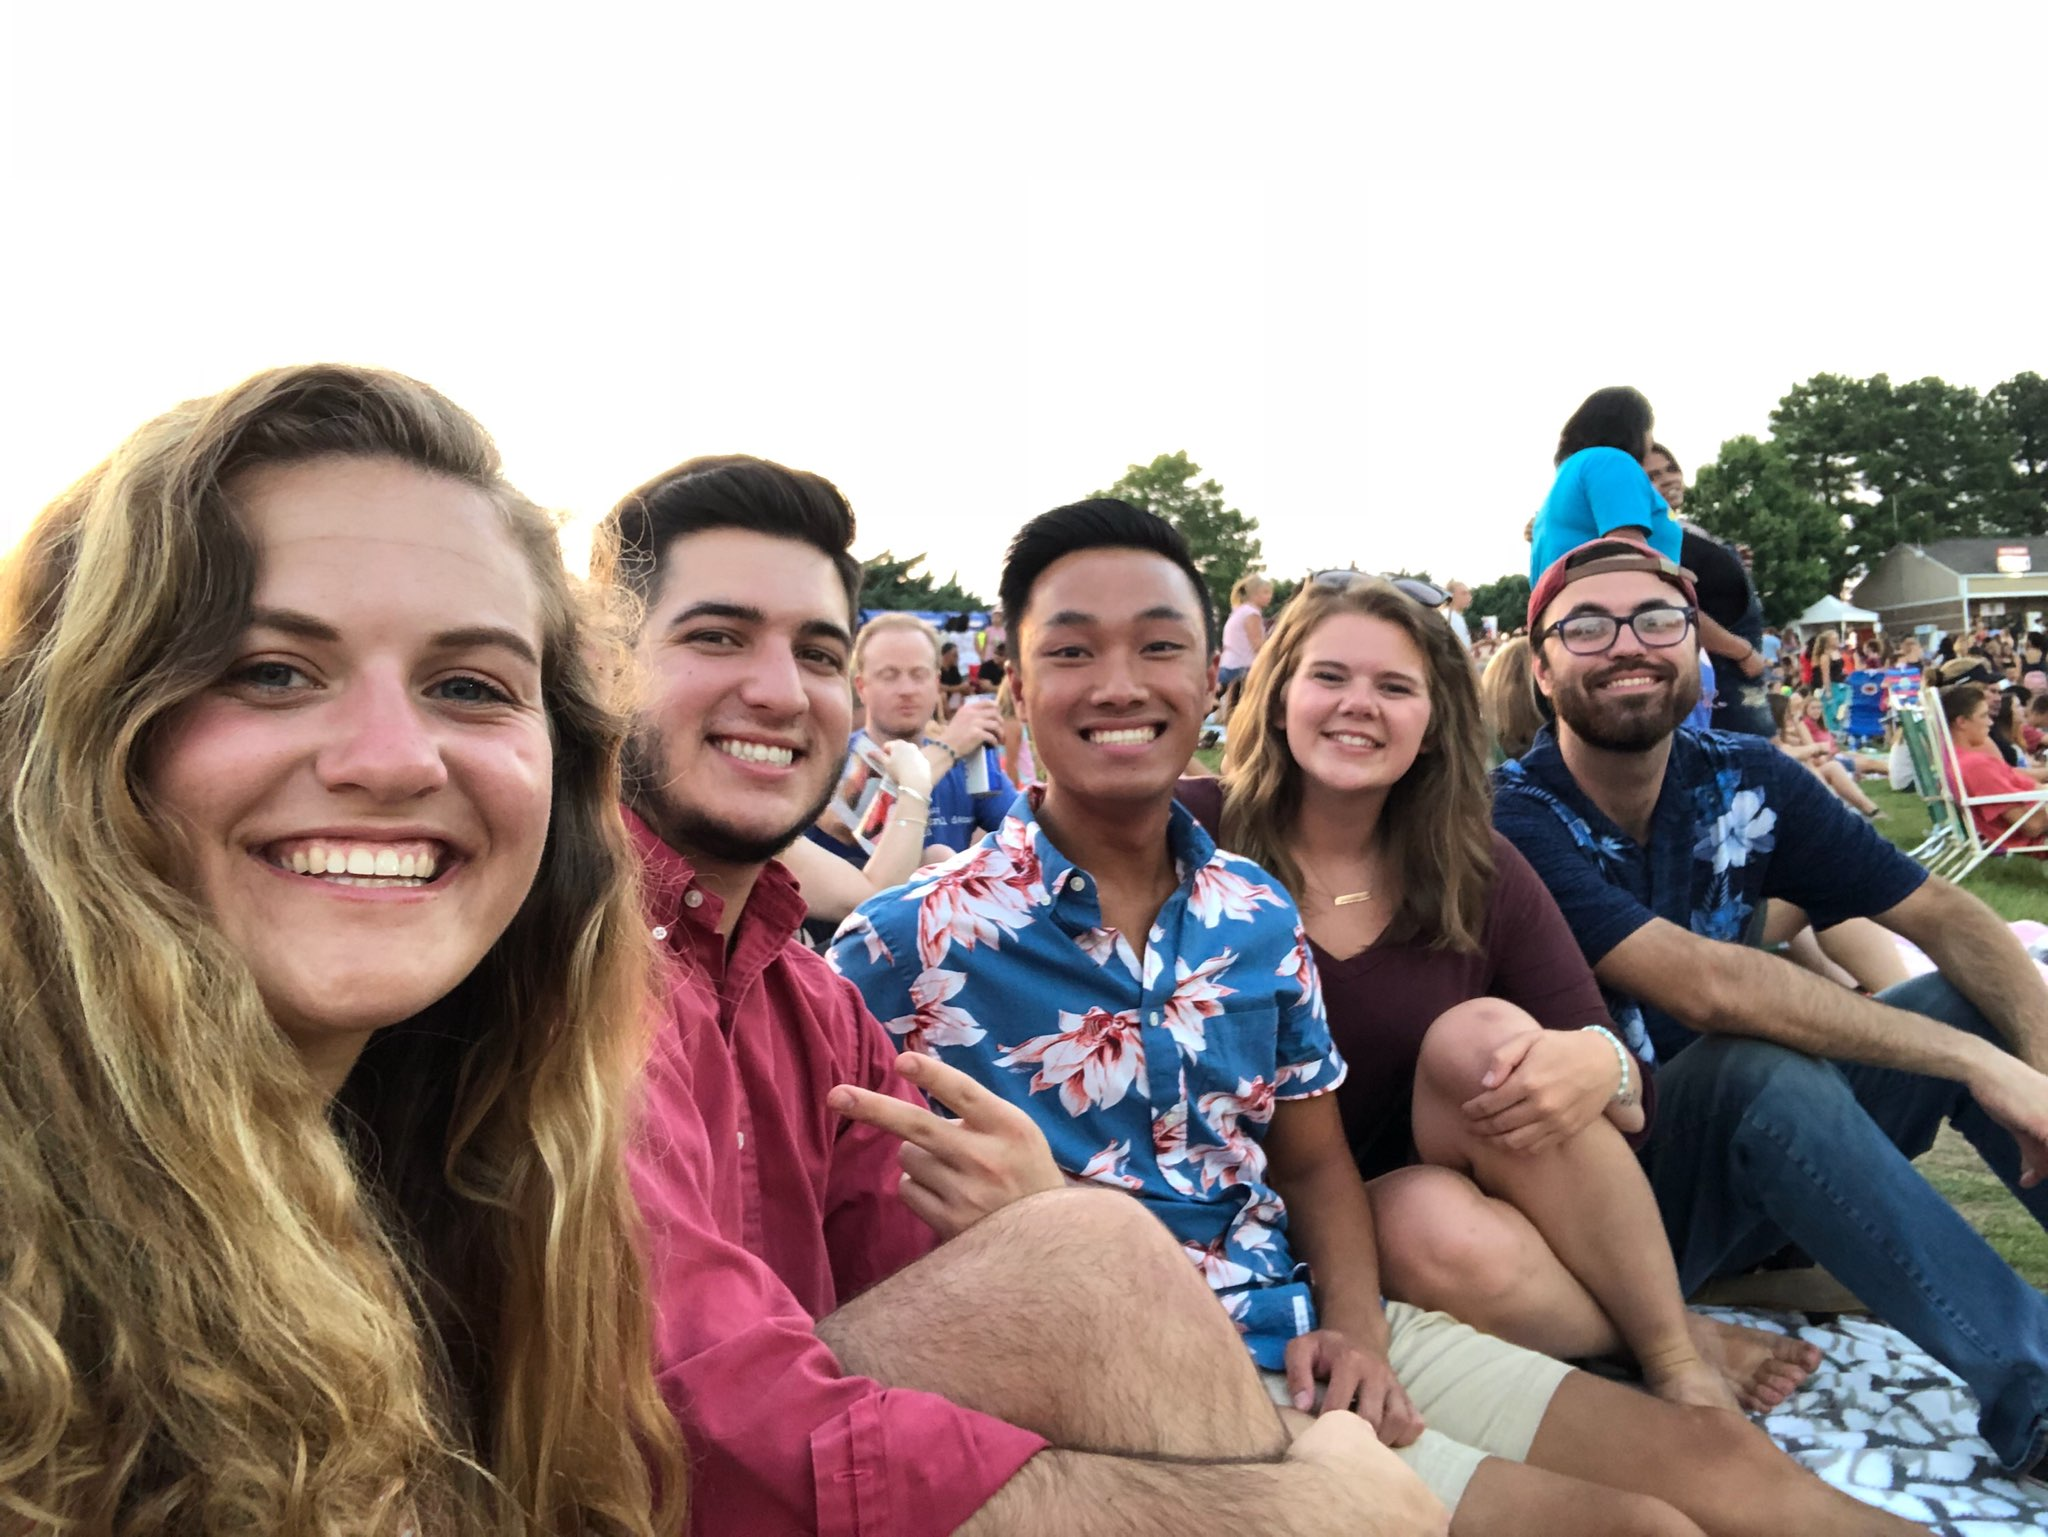 Harley Watkins (second from right) sits with her friends (Hunter and Mason Freitas, Adam Kelly and Allen Ellis) at a Charlie put concert.